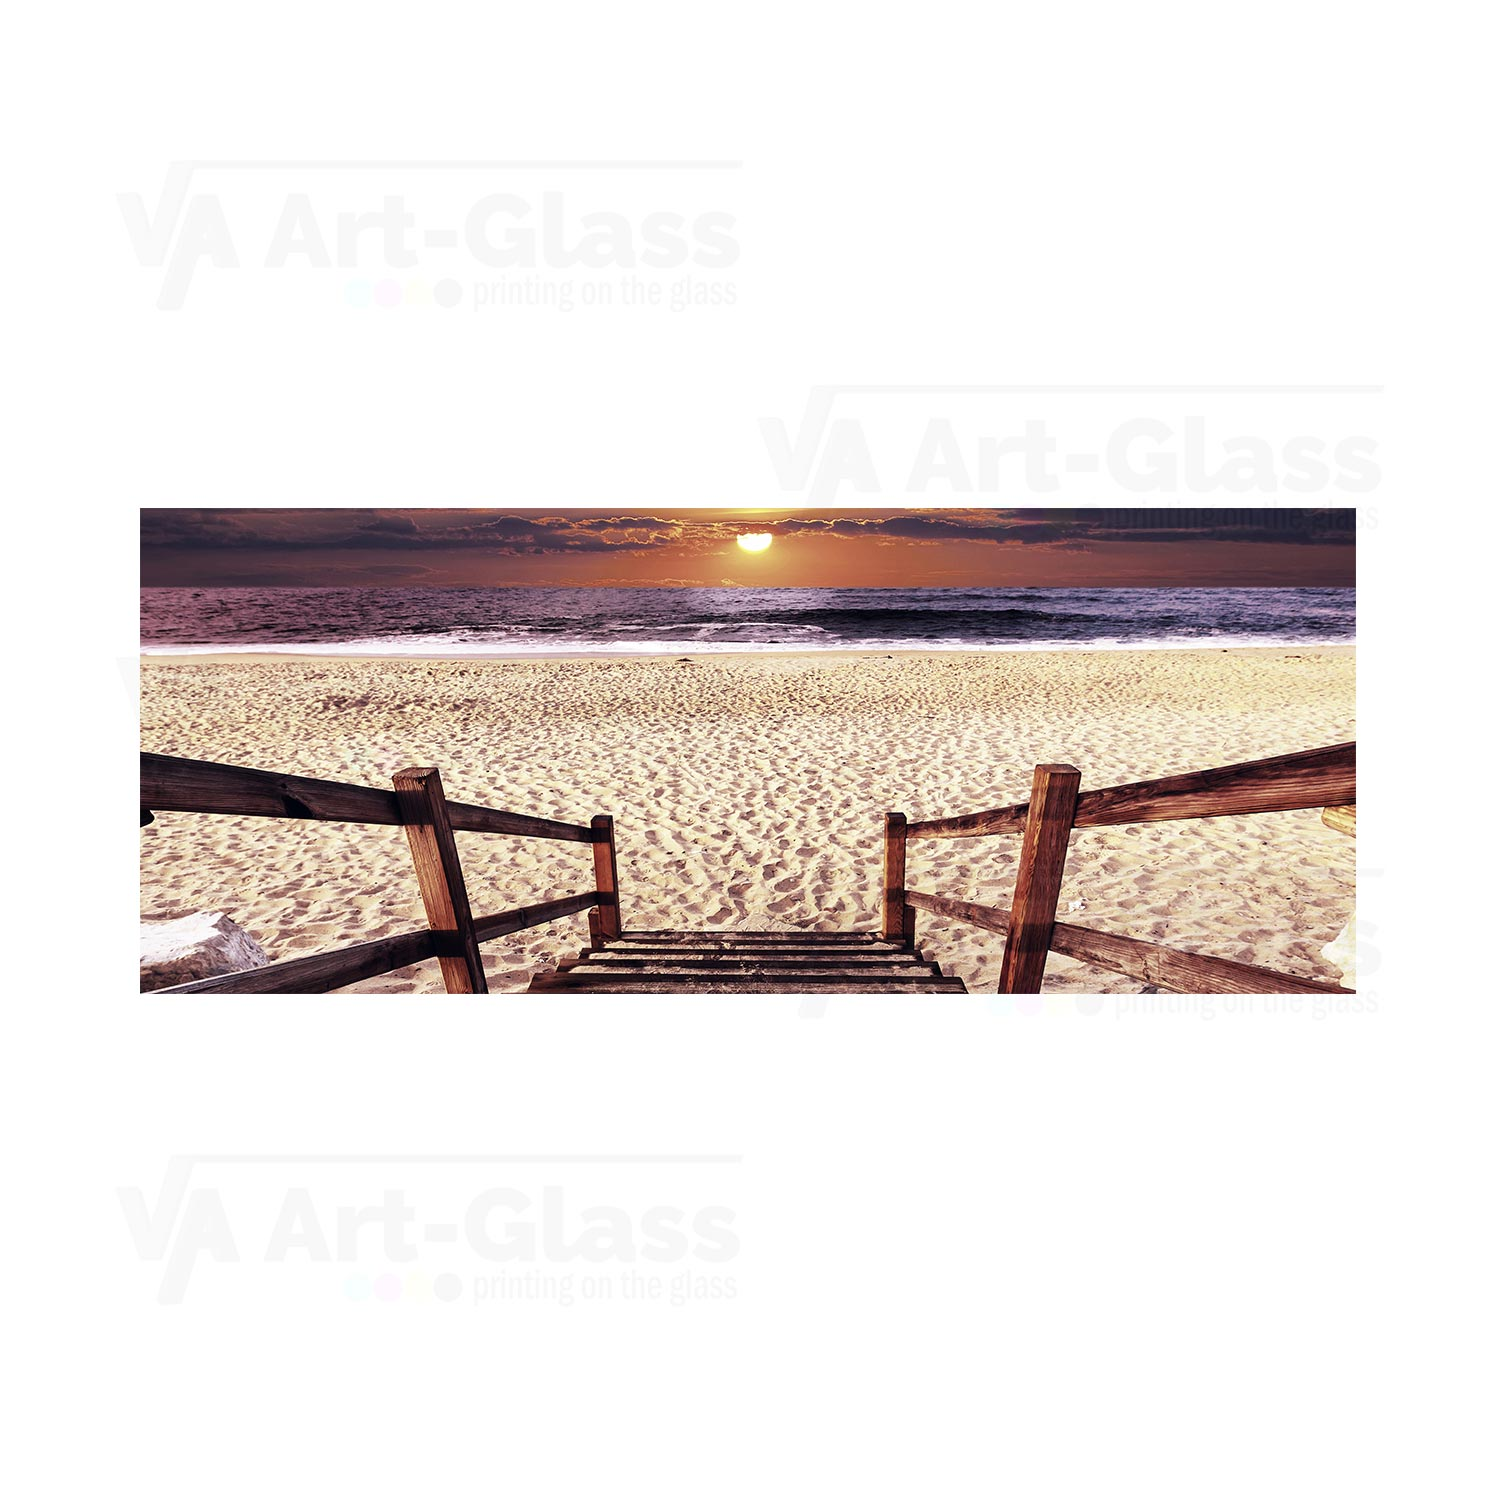 glass picture with a boardwalk on the beach size cm 125x50 va art glass. Black Bedroom Furniture Sets. Home Design Ideas